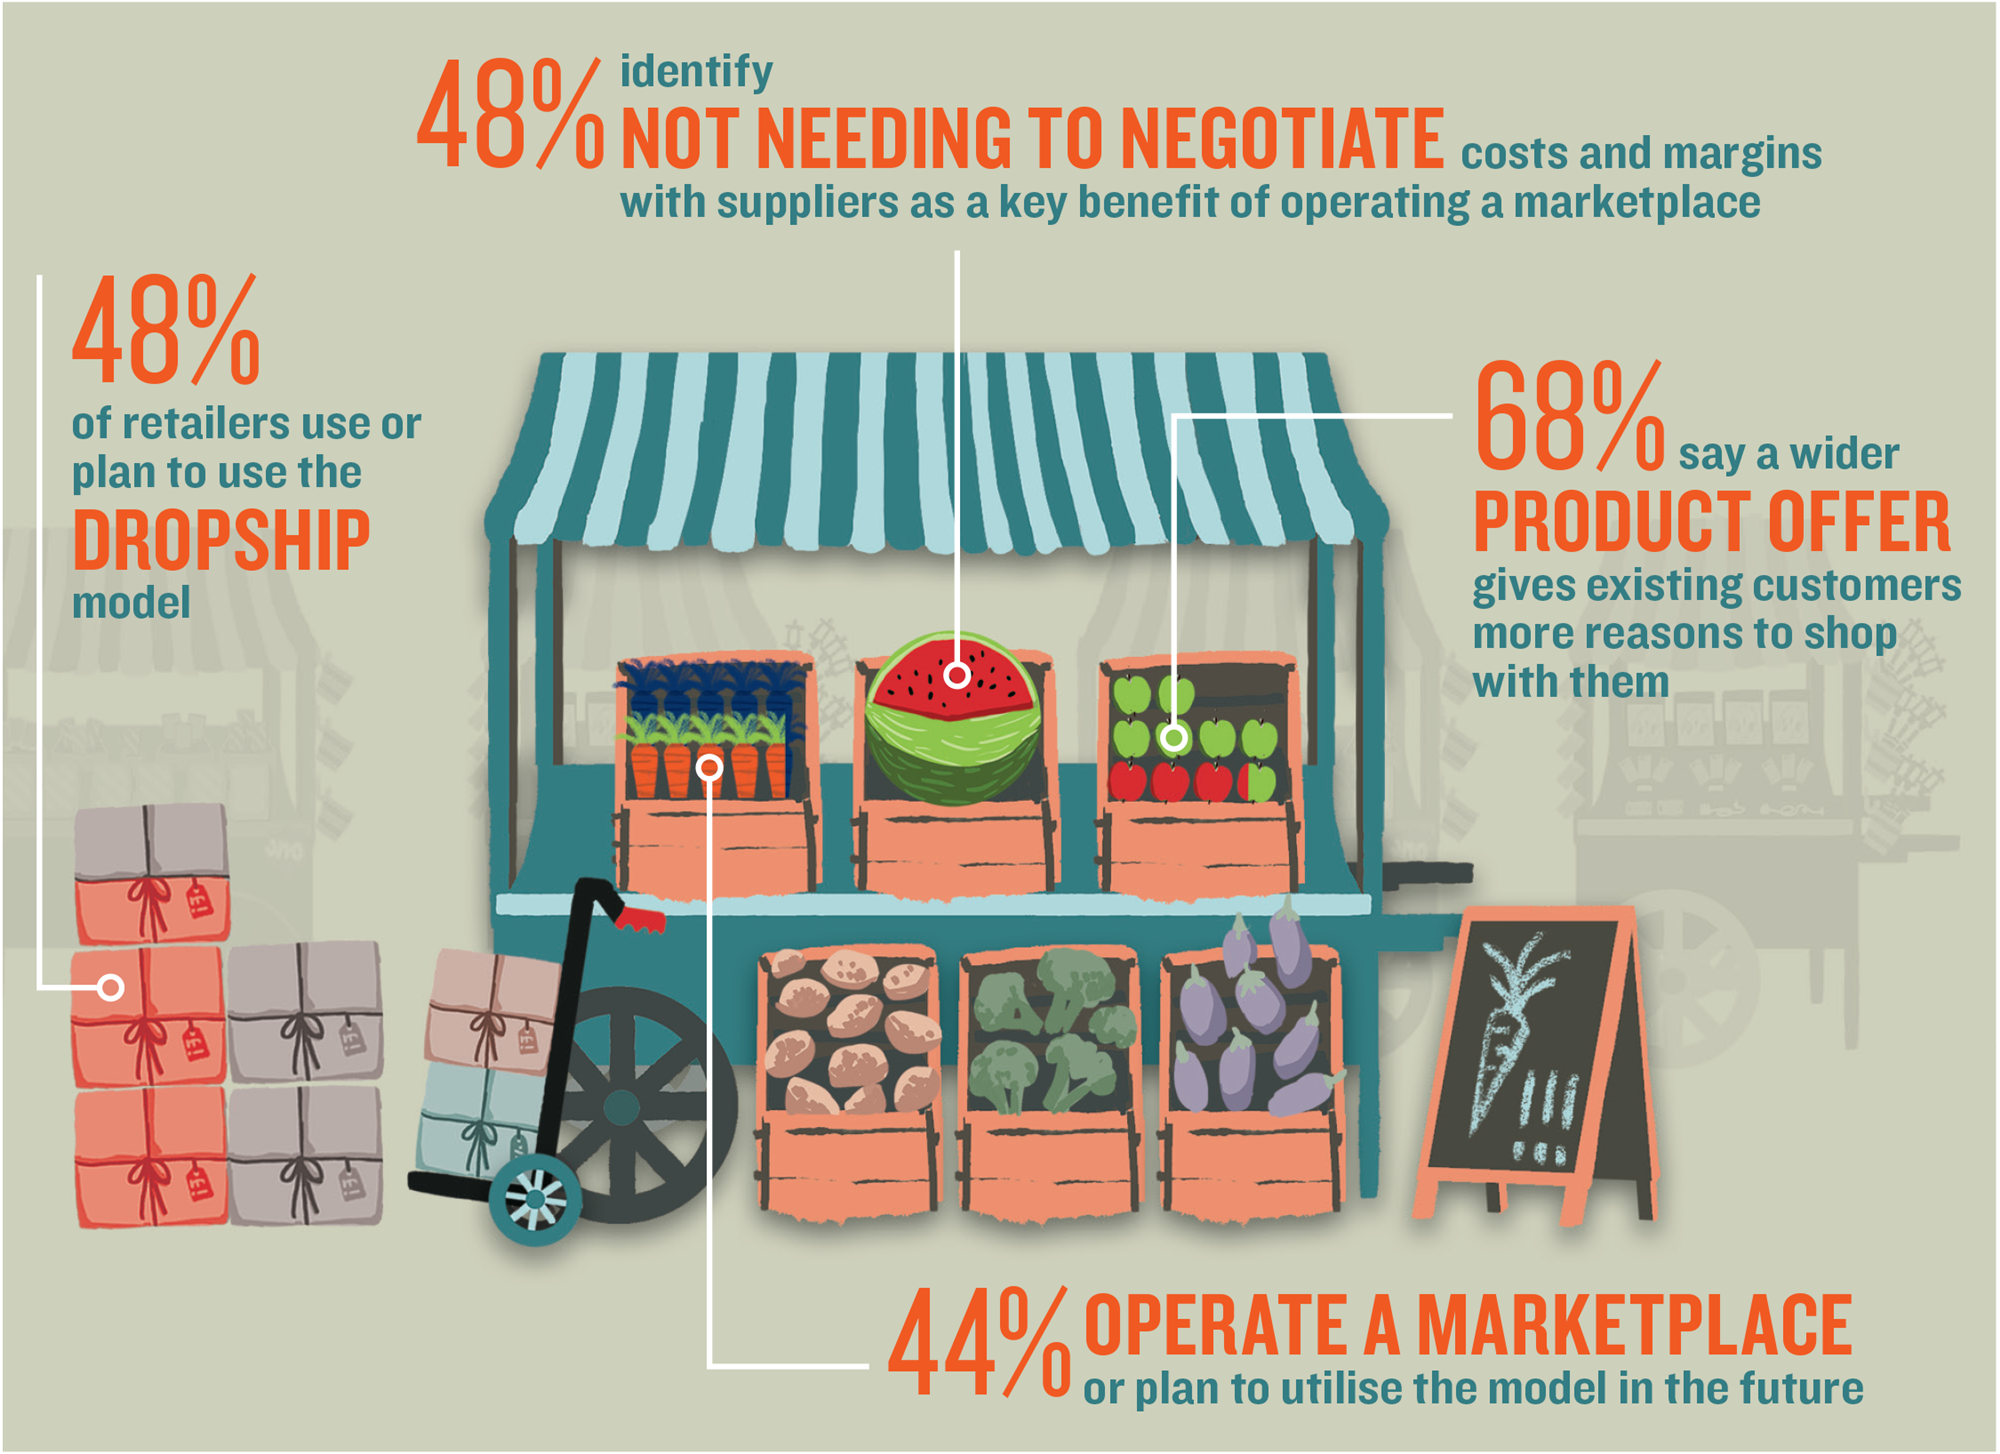 7e43bf1937f89 Analysis: Why 44% of retailers are launching marketplaces | Analysis |  Retail Week